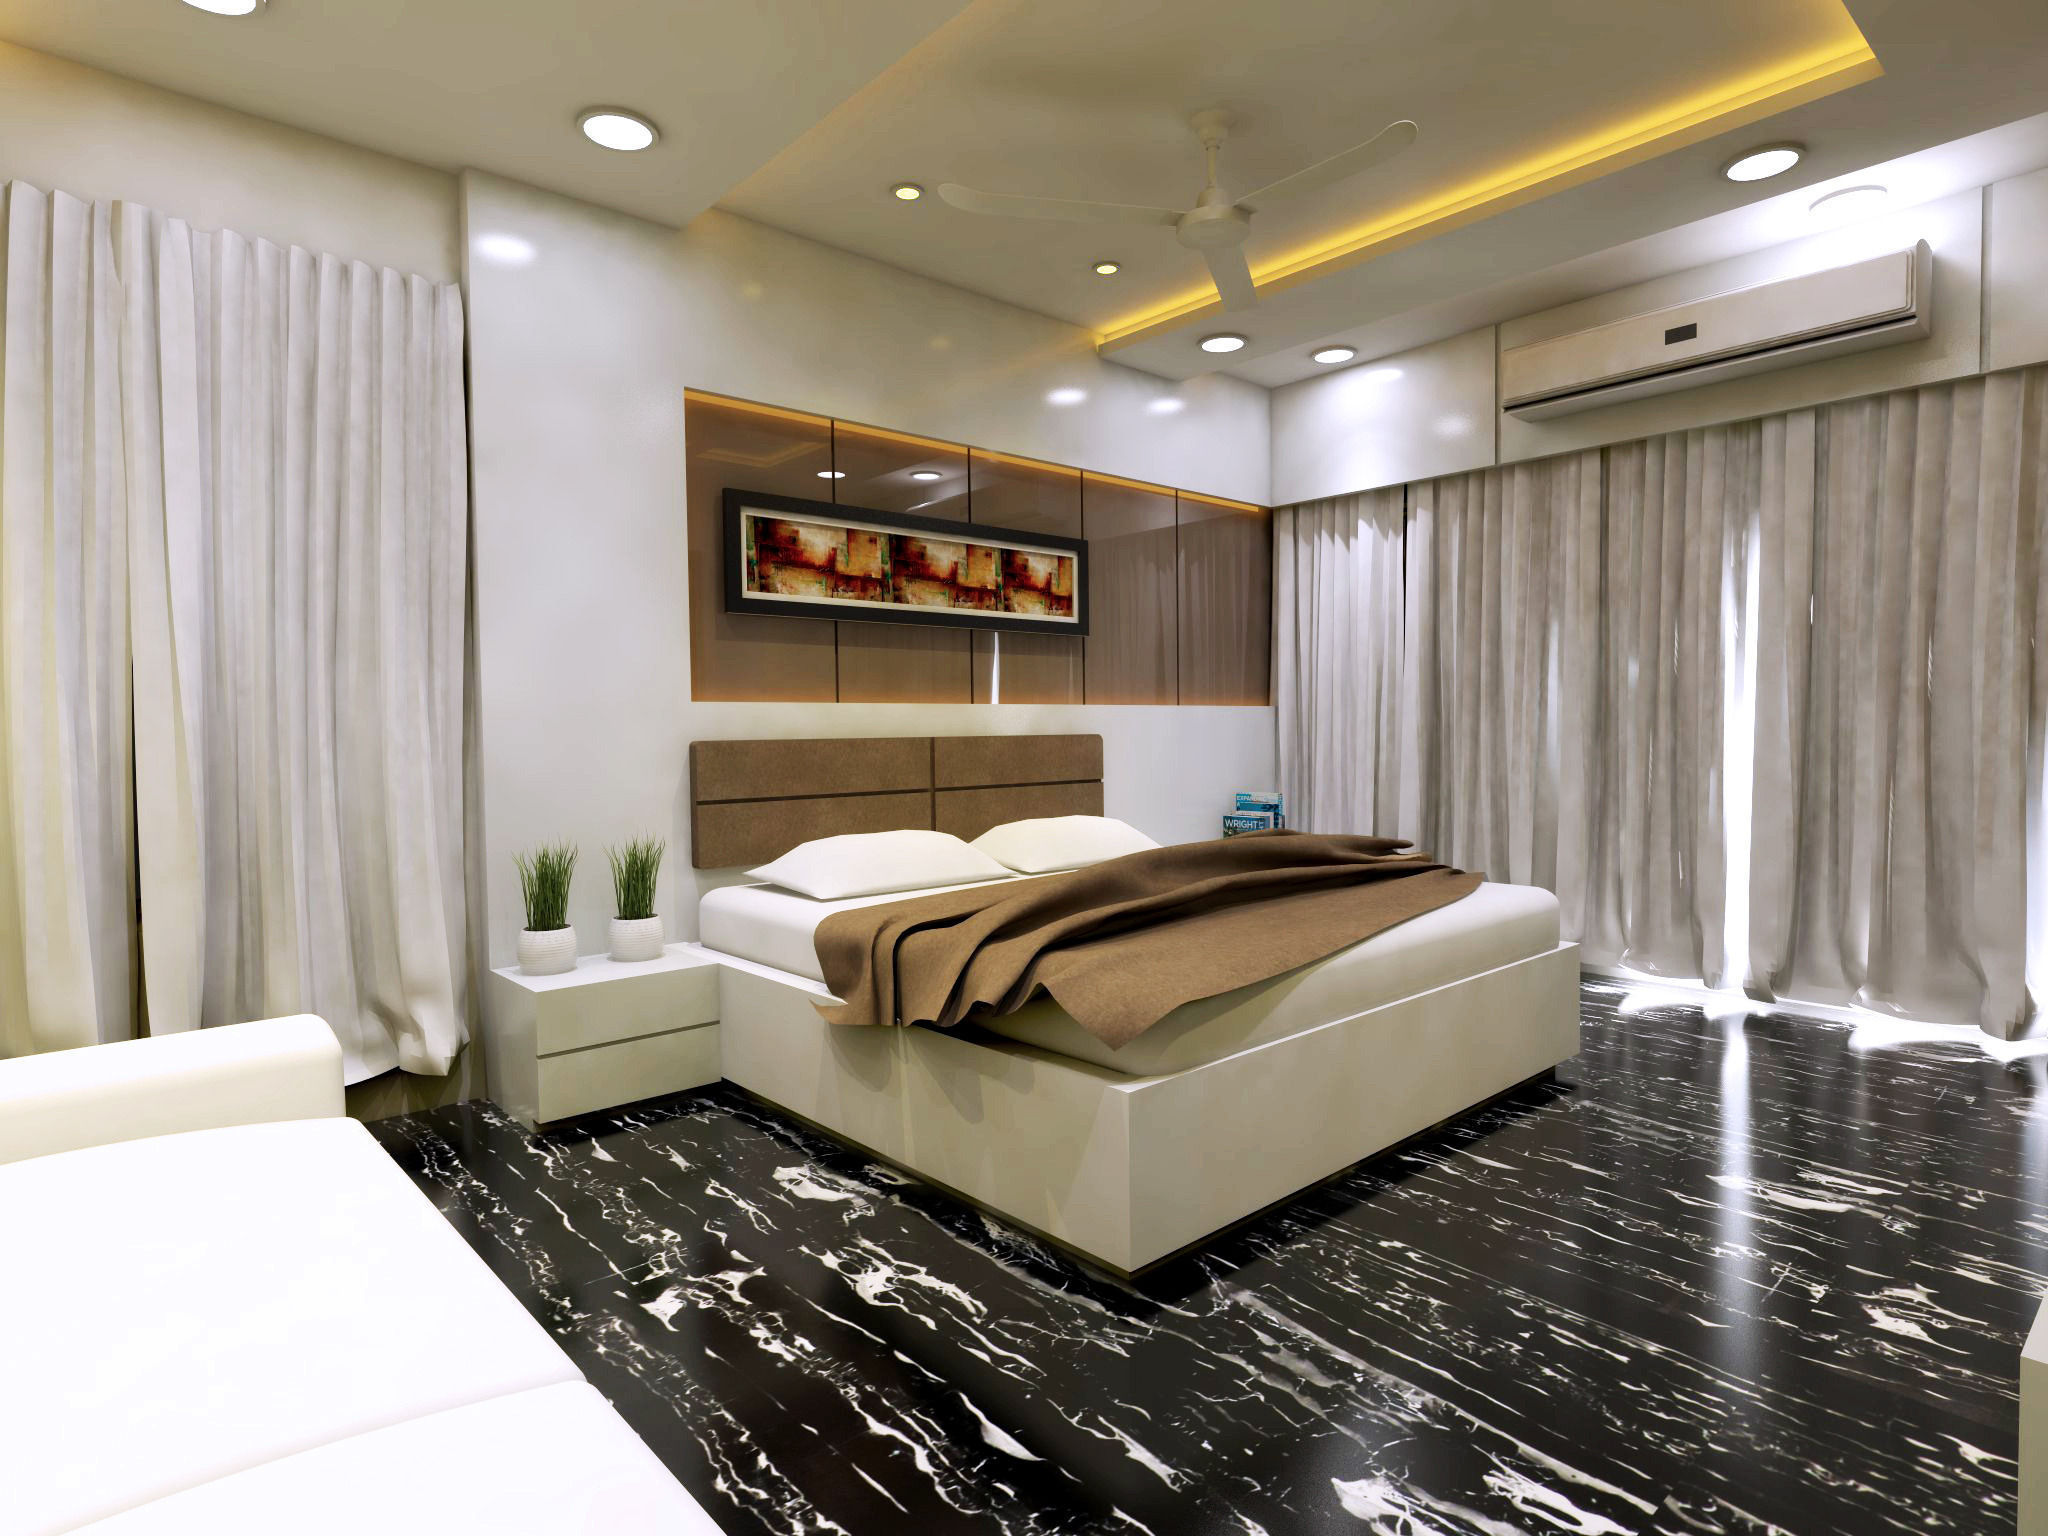 modern bedroom interior vray rendered 3d model skp 1 ...